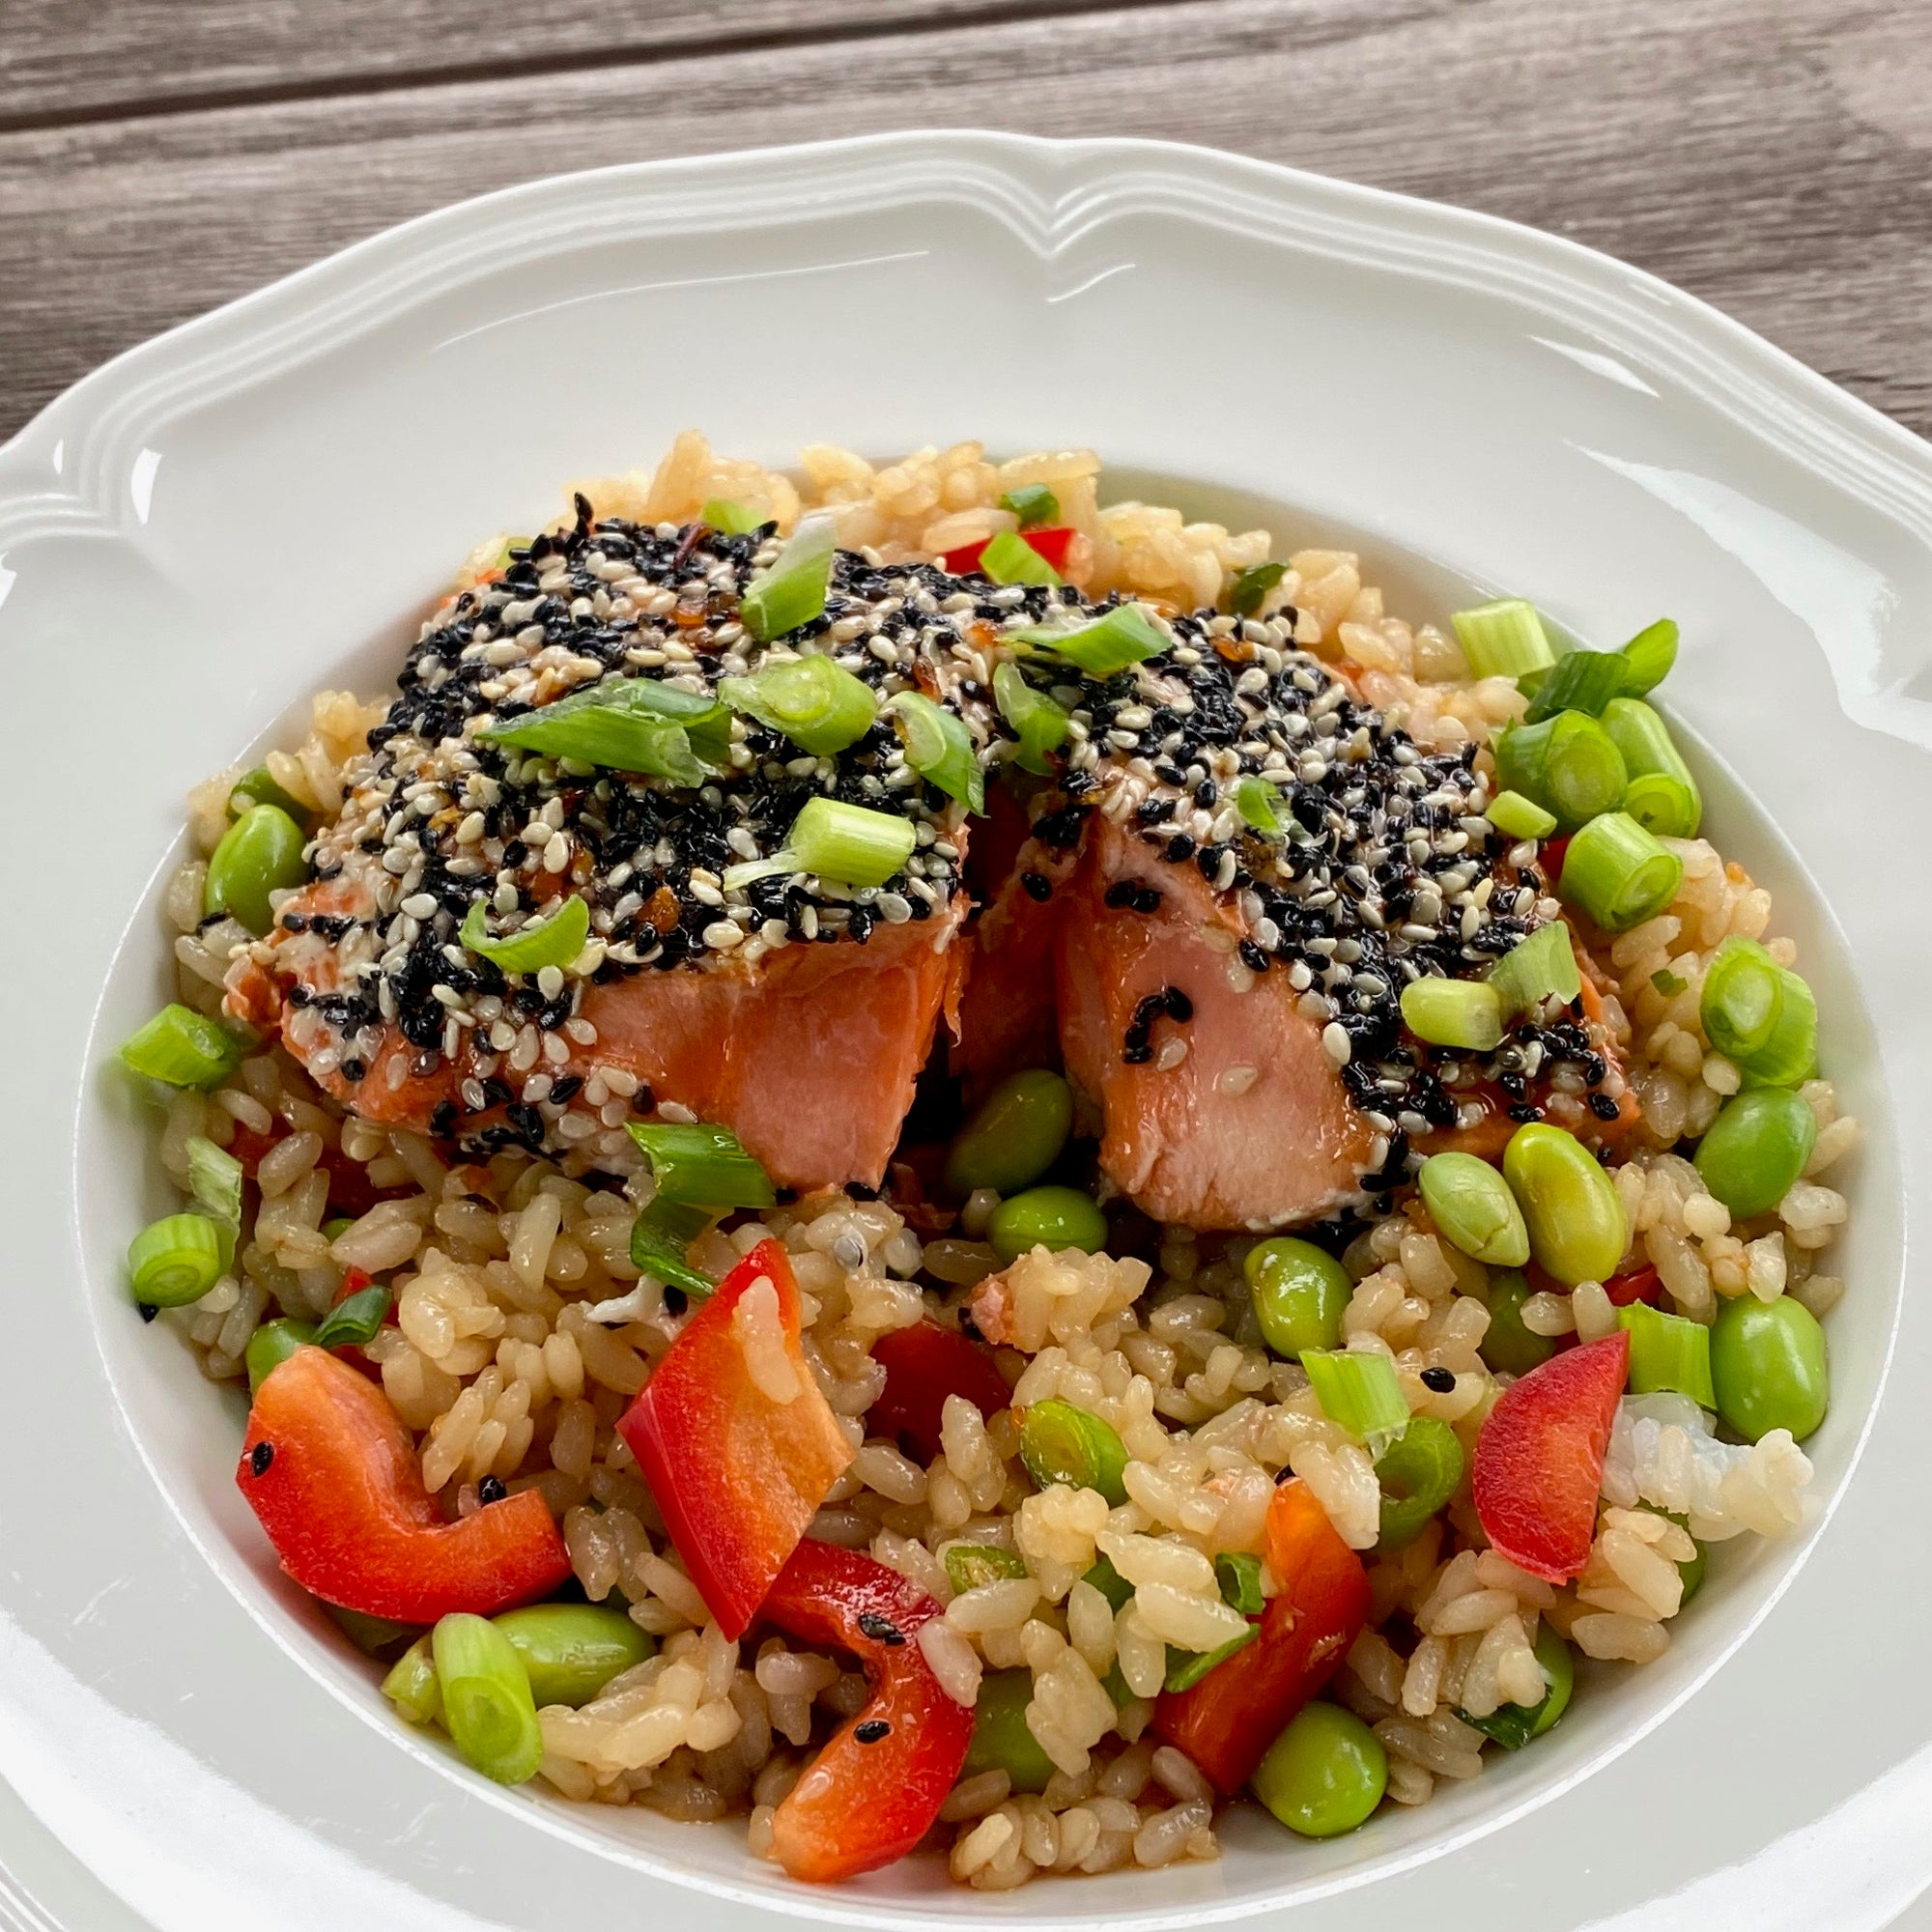 Premier Catch Sesame-Crusted Salmon Bowl